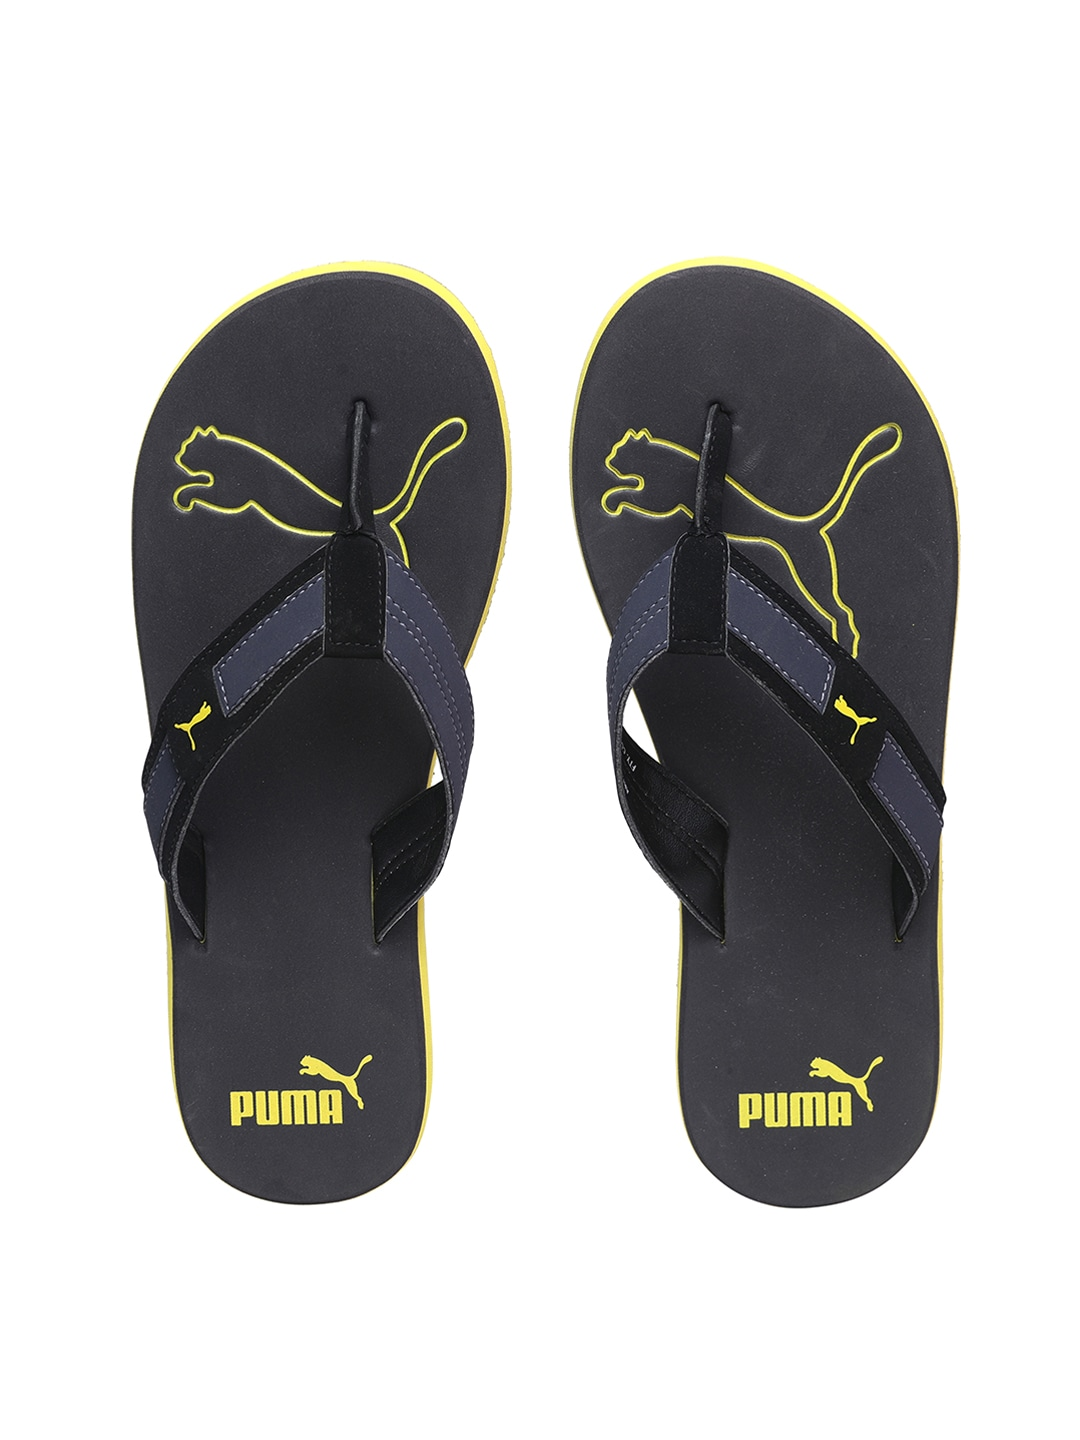 Buy Puma Men Black Wrens GU IDP Thong Flip Flops - Flip Flops for ... 1beef8d4d